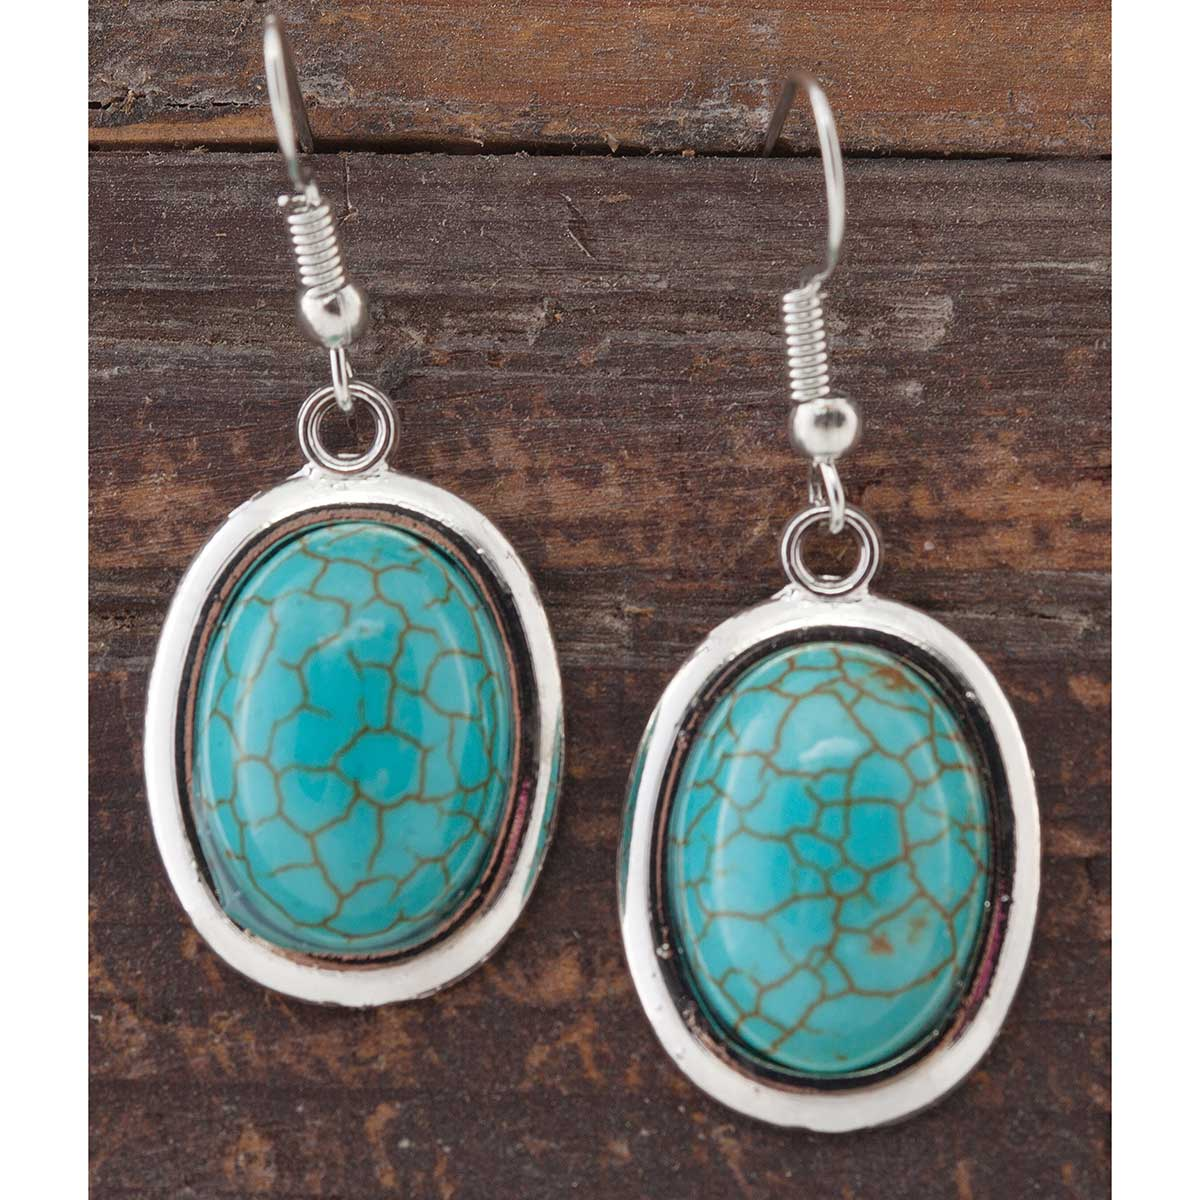 Antique Silver and Turquoise Oval French Wire Earrings